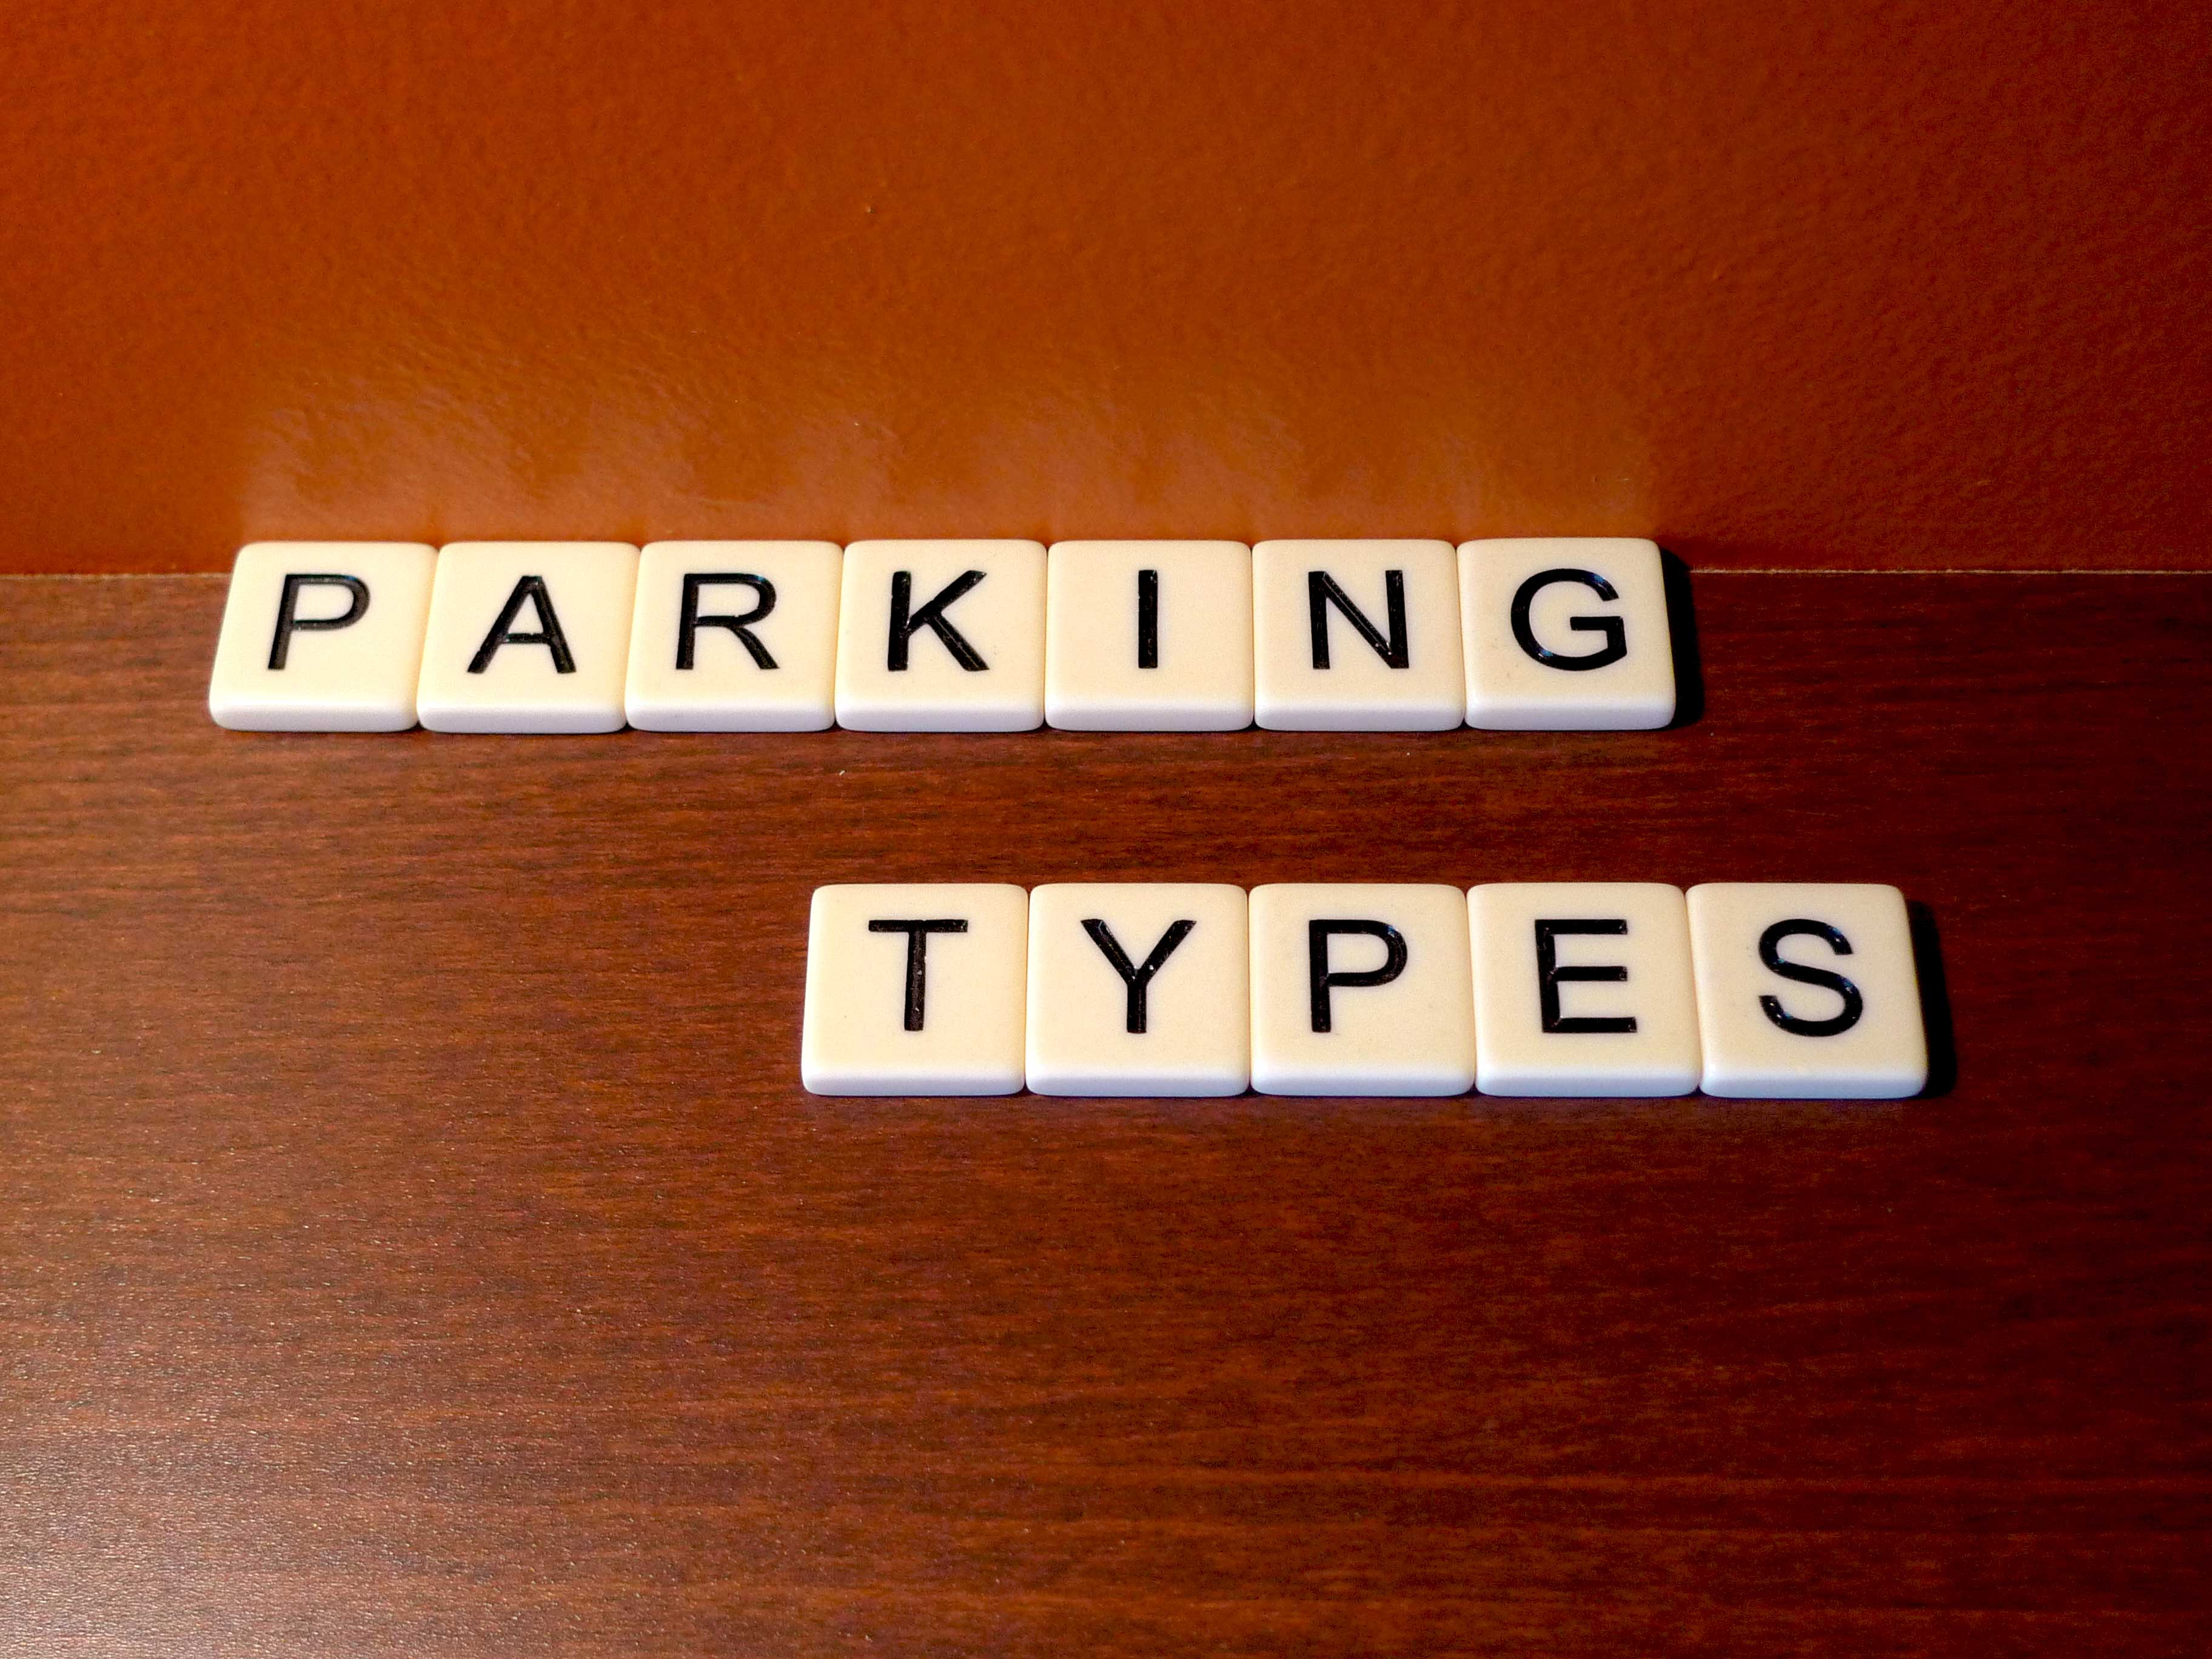 What are the Different Parking Types? | Real Estate Definition